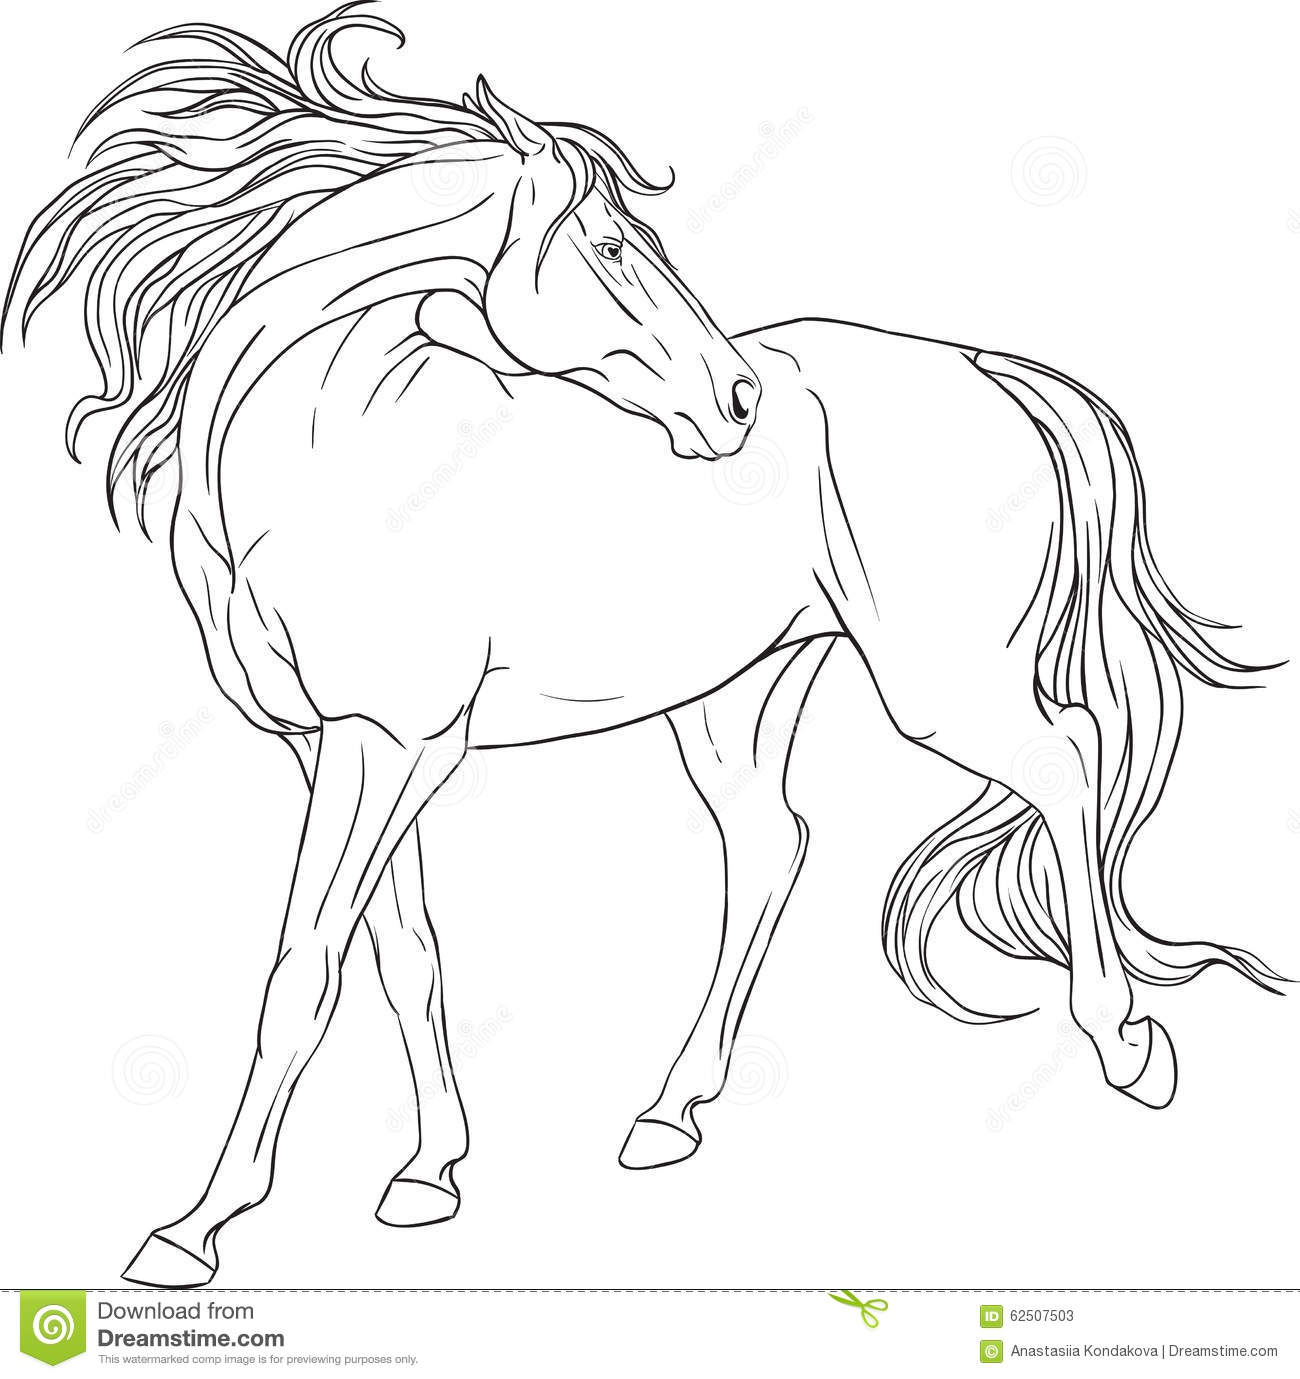 Coloring Book With A Horse Stock Vector - Image: 62507503